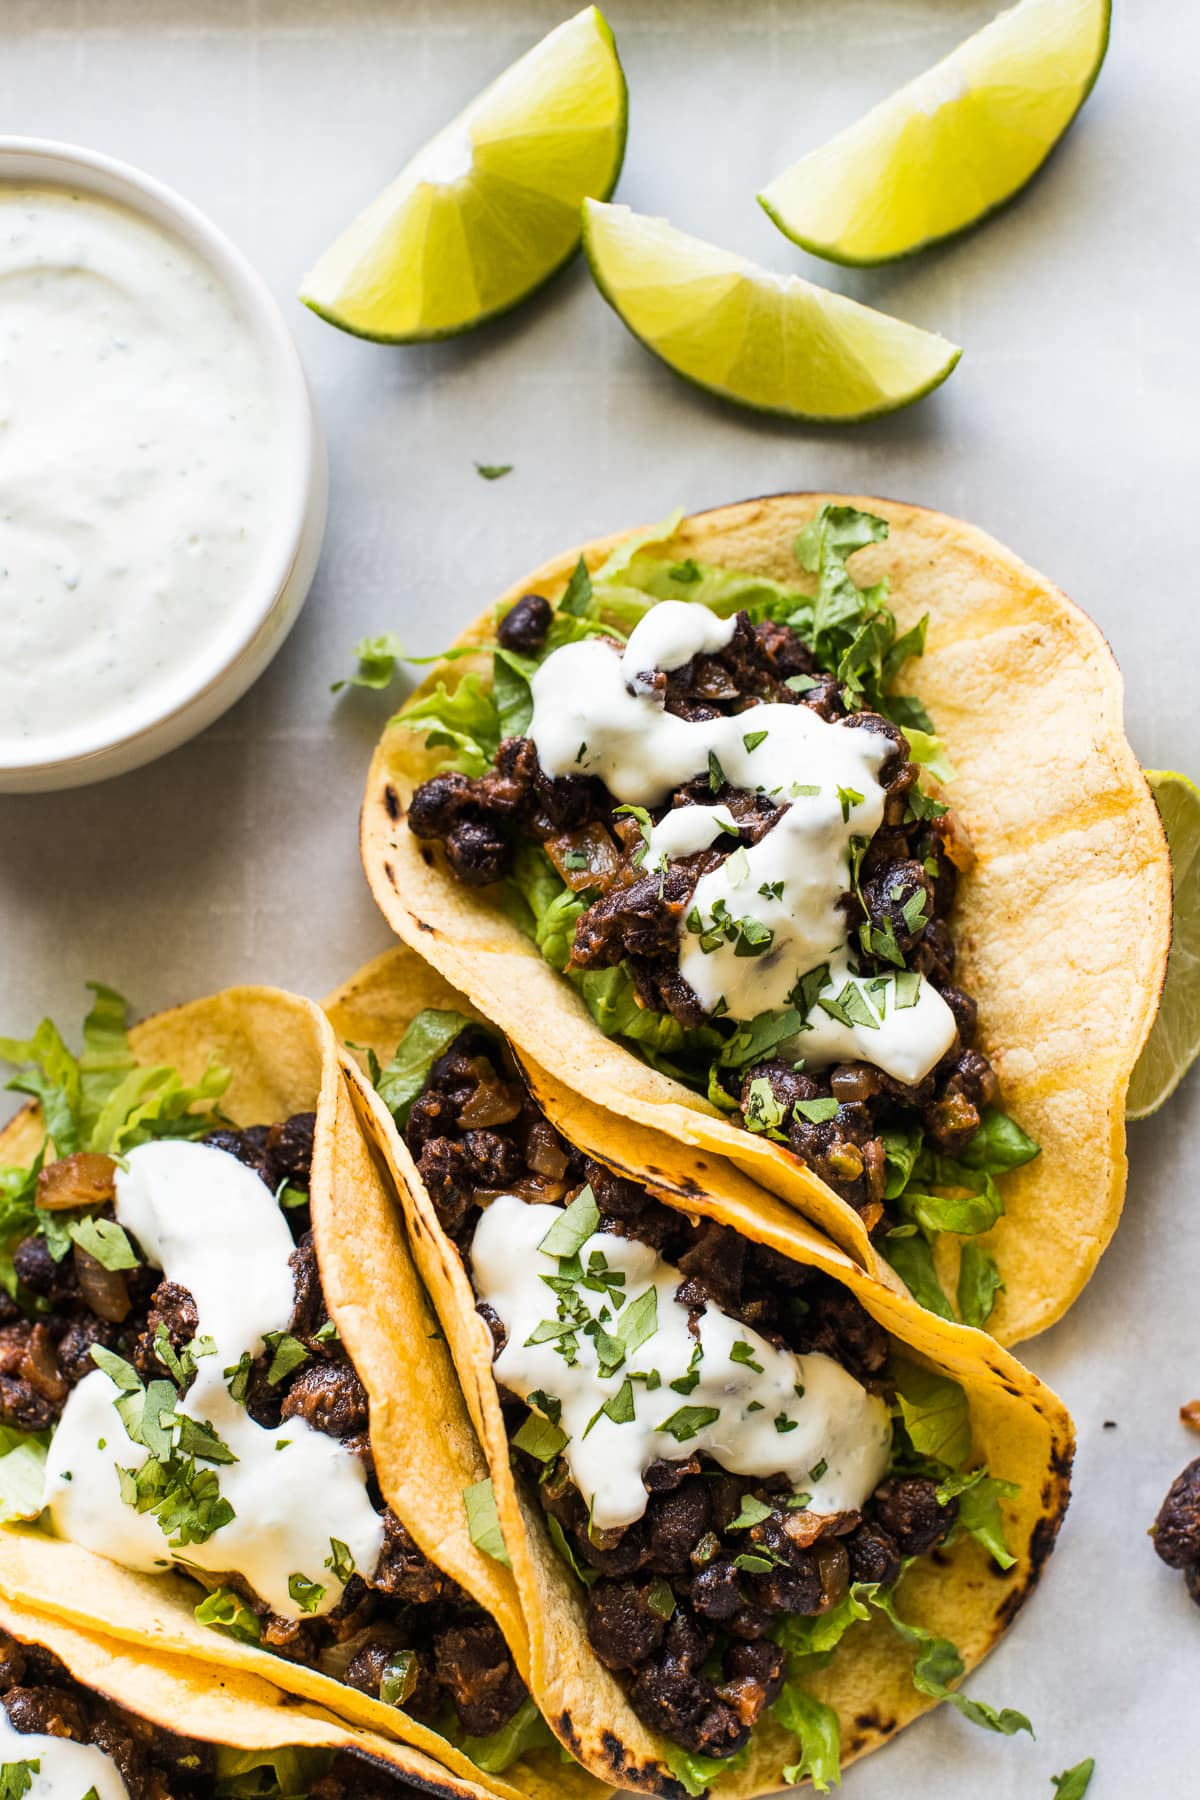 Black bean tacos in a corn tortilla with lime wedges.